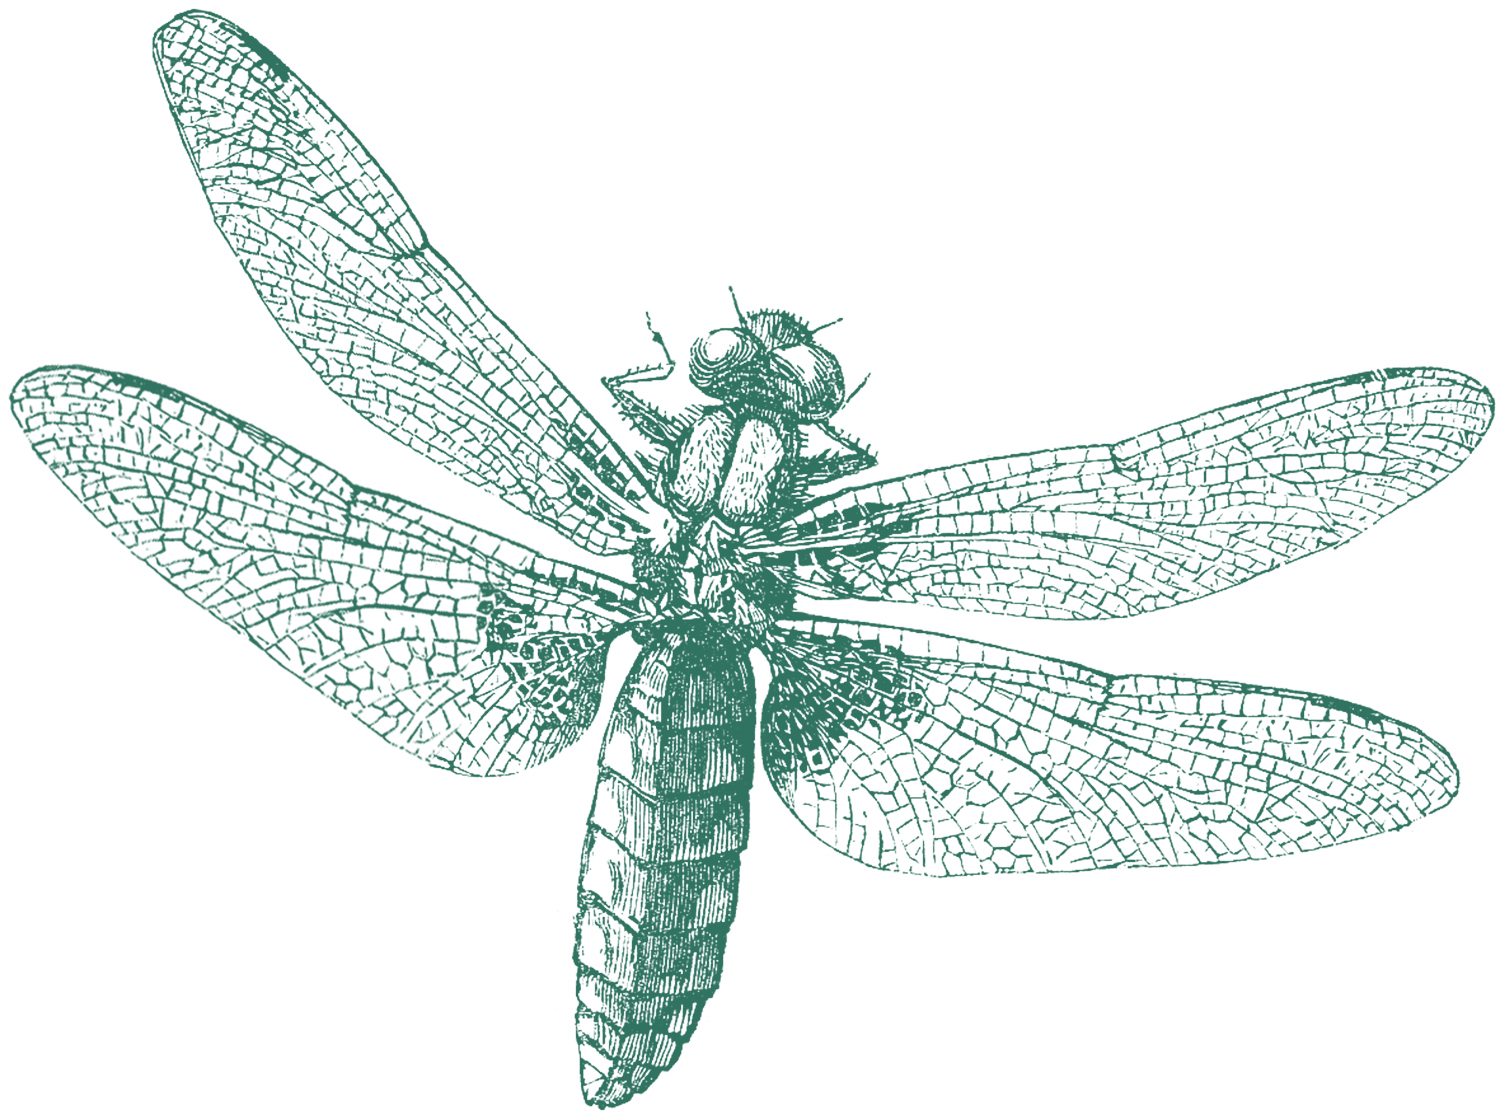 Royalty Free Images - Dragonfly - The Graphics Fairy